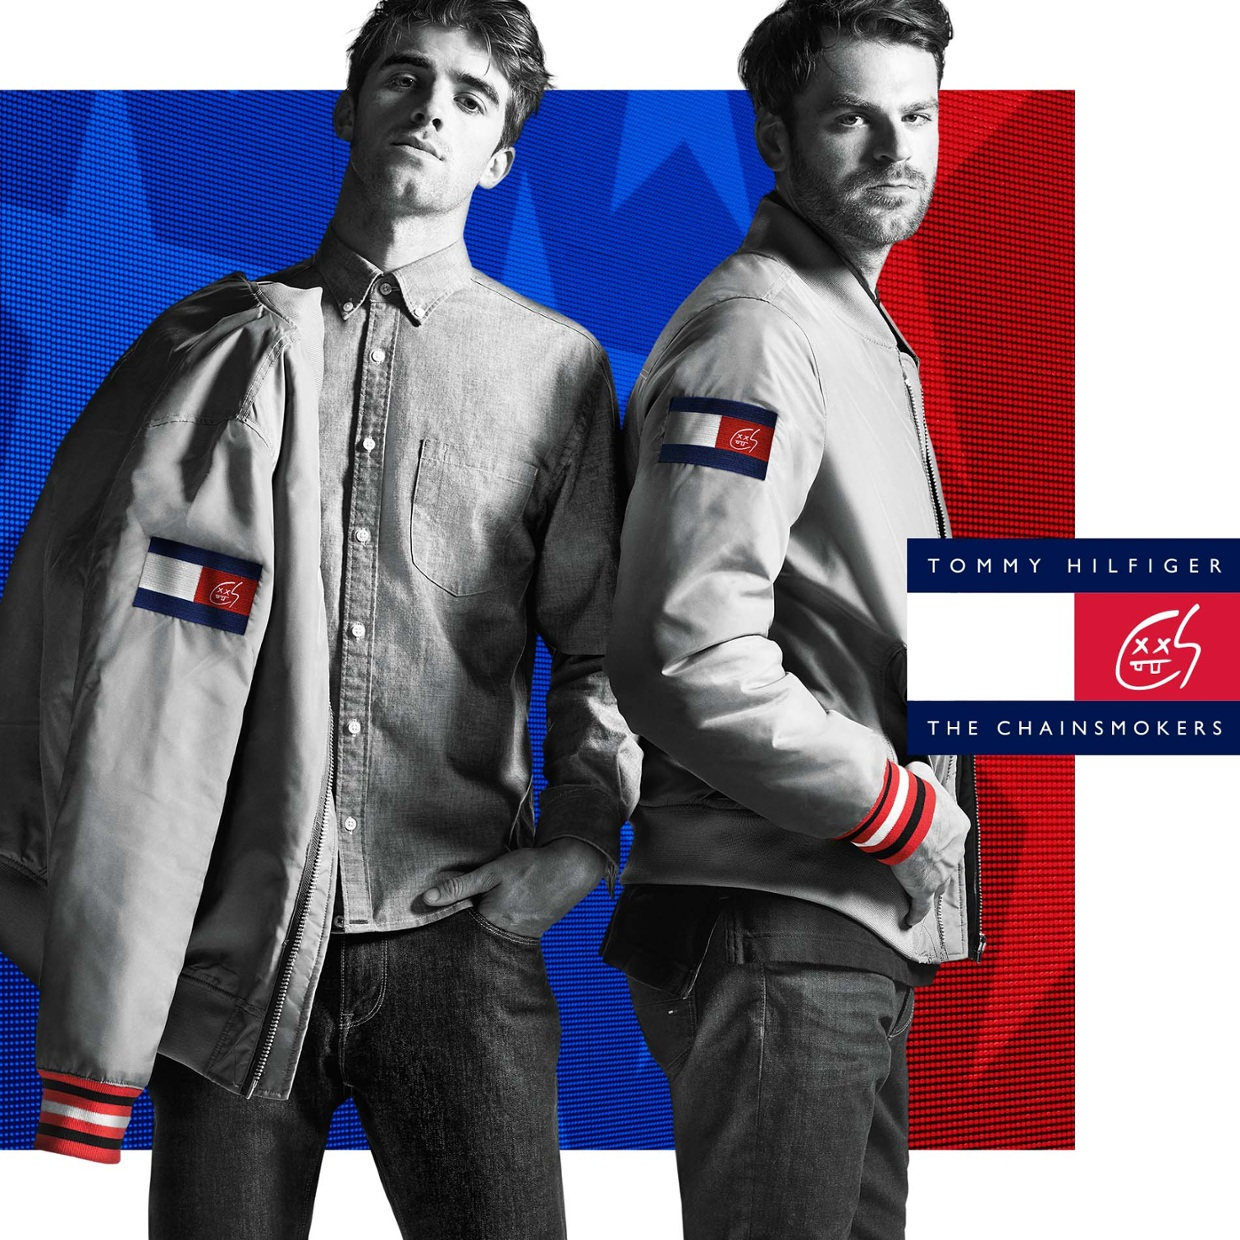 tommy-hilfiger-chainsmokers-05